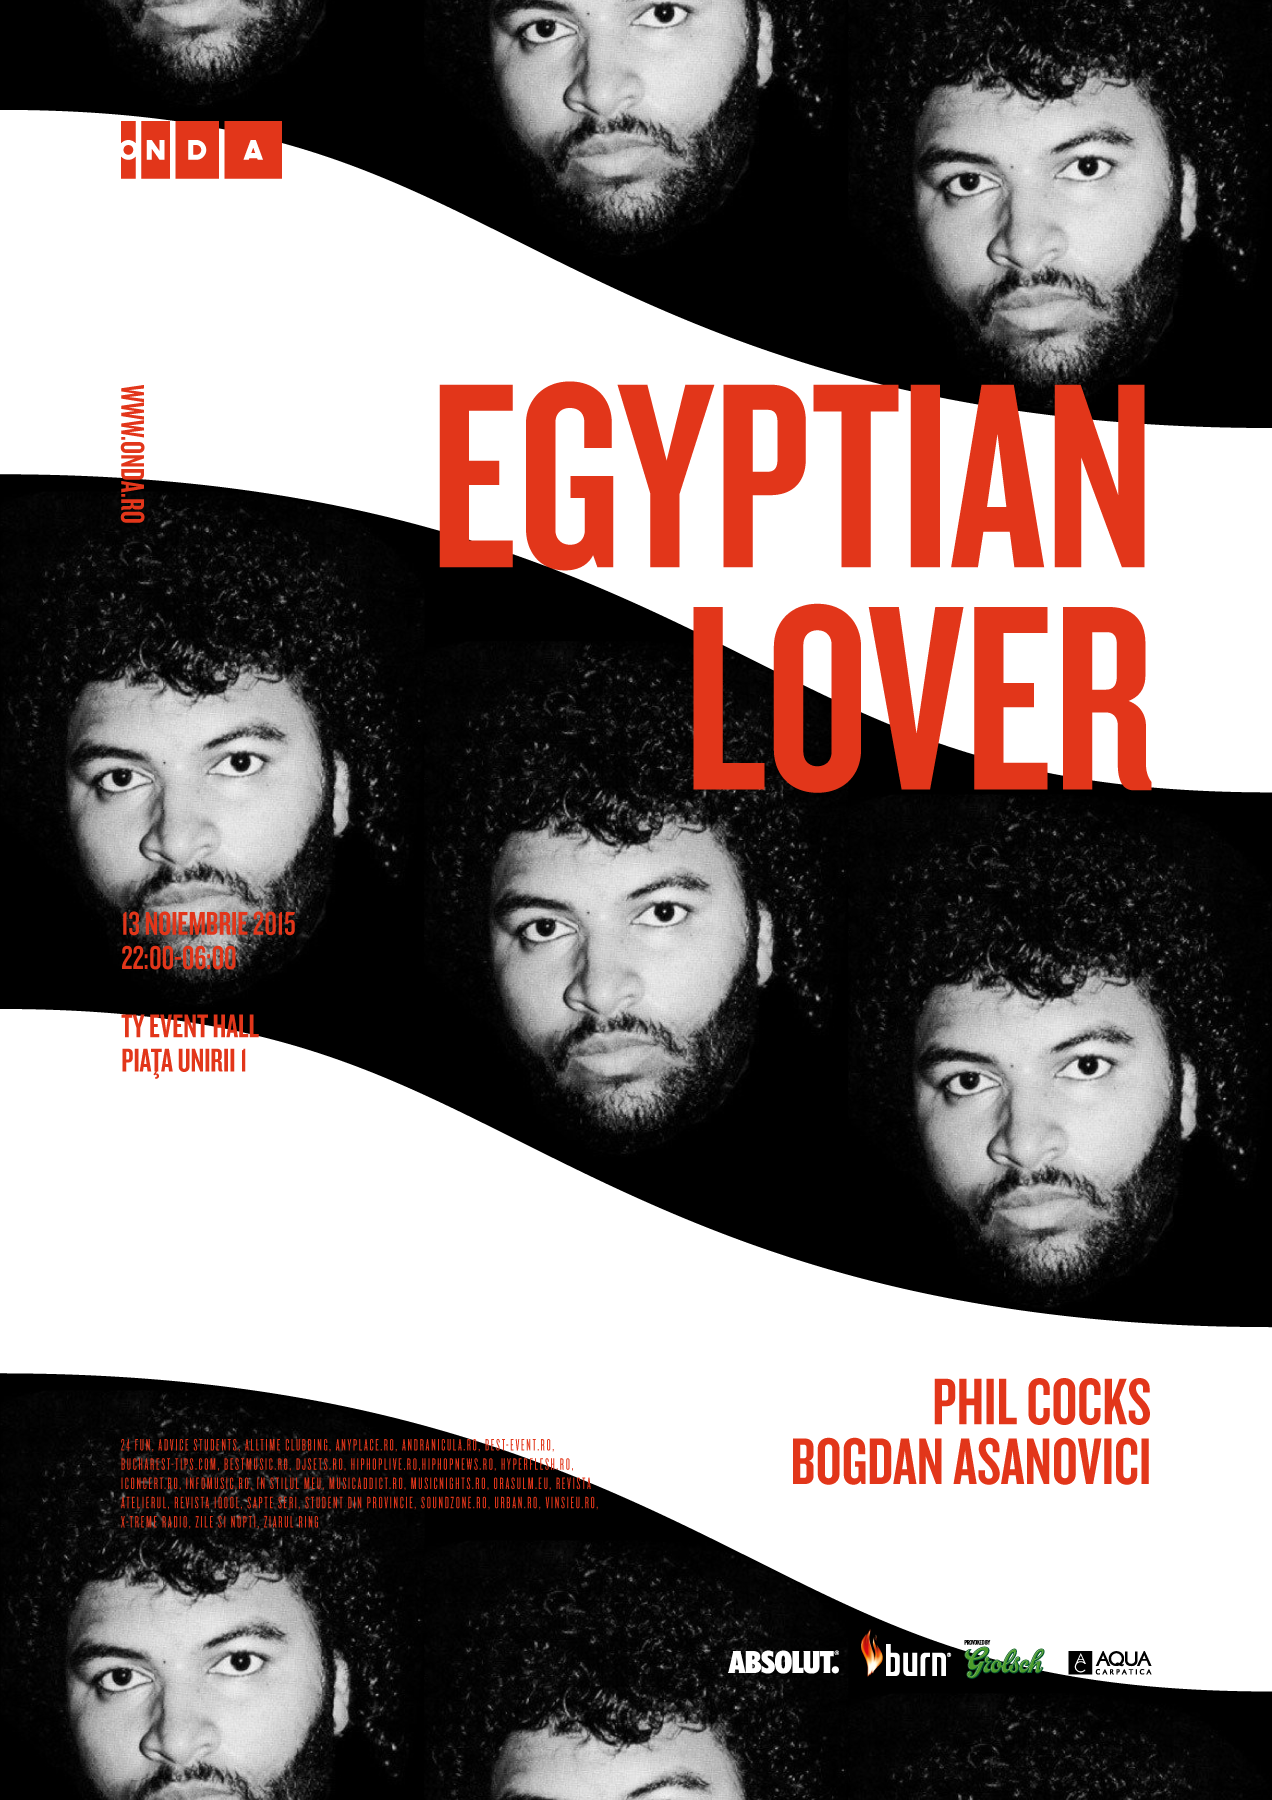 ONDA pres. Egyptian Lover